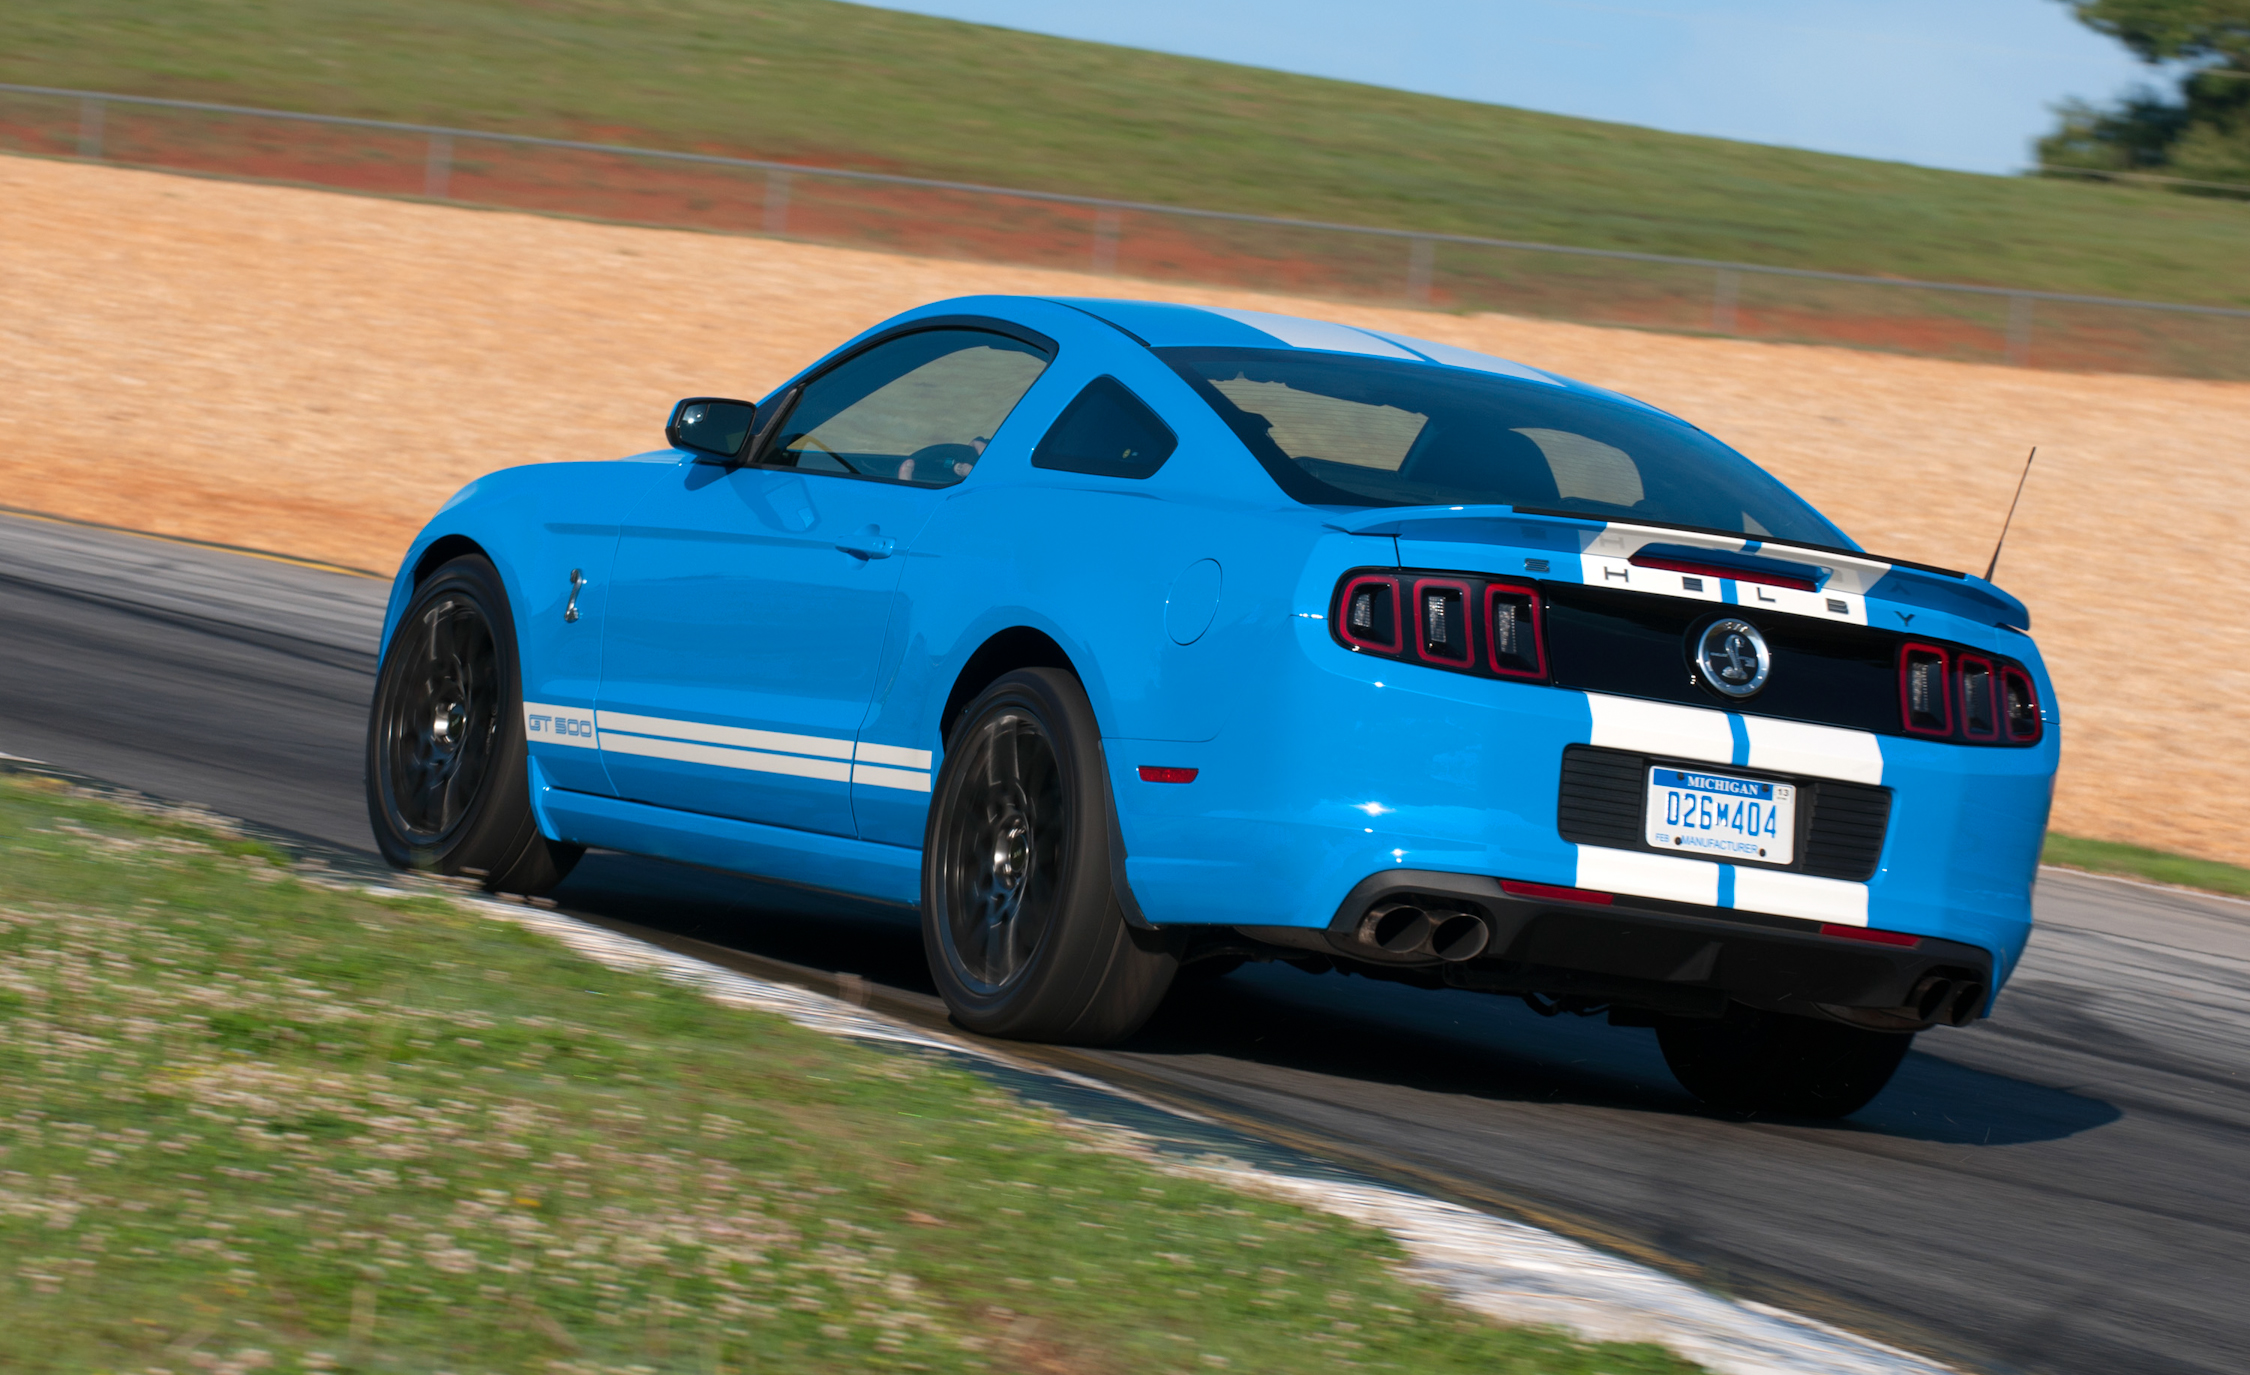 2013 Ford Mustang Shelby GT500 Blue Test Drive Side And Rear View (Photo 18 of 47)